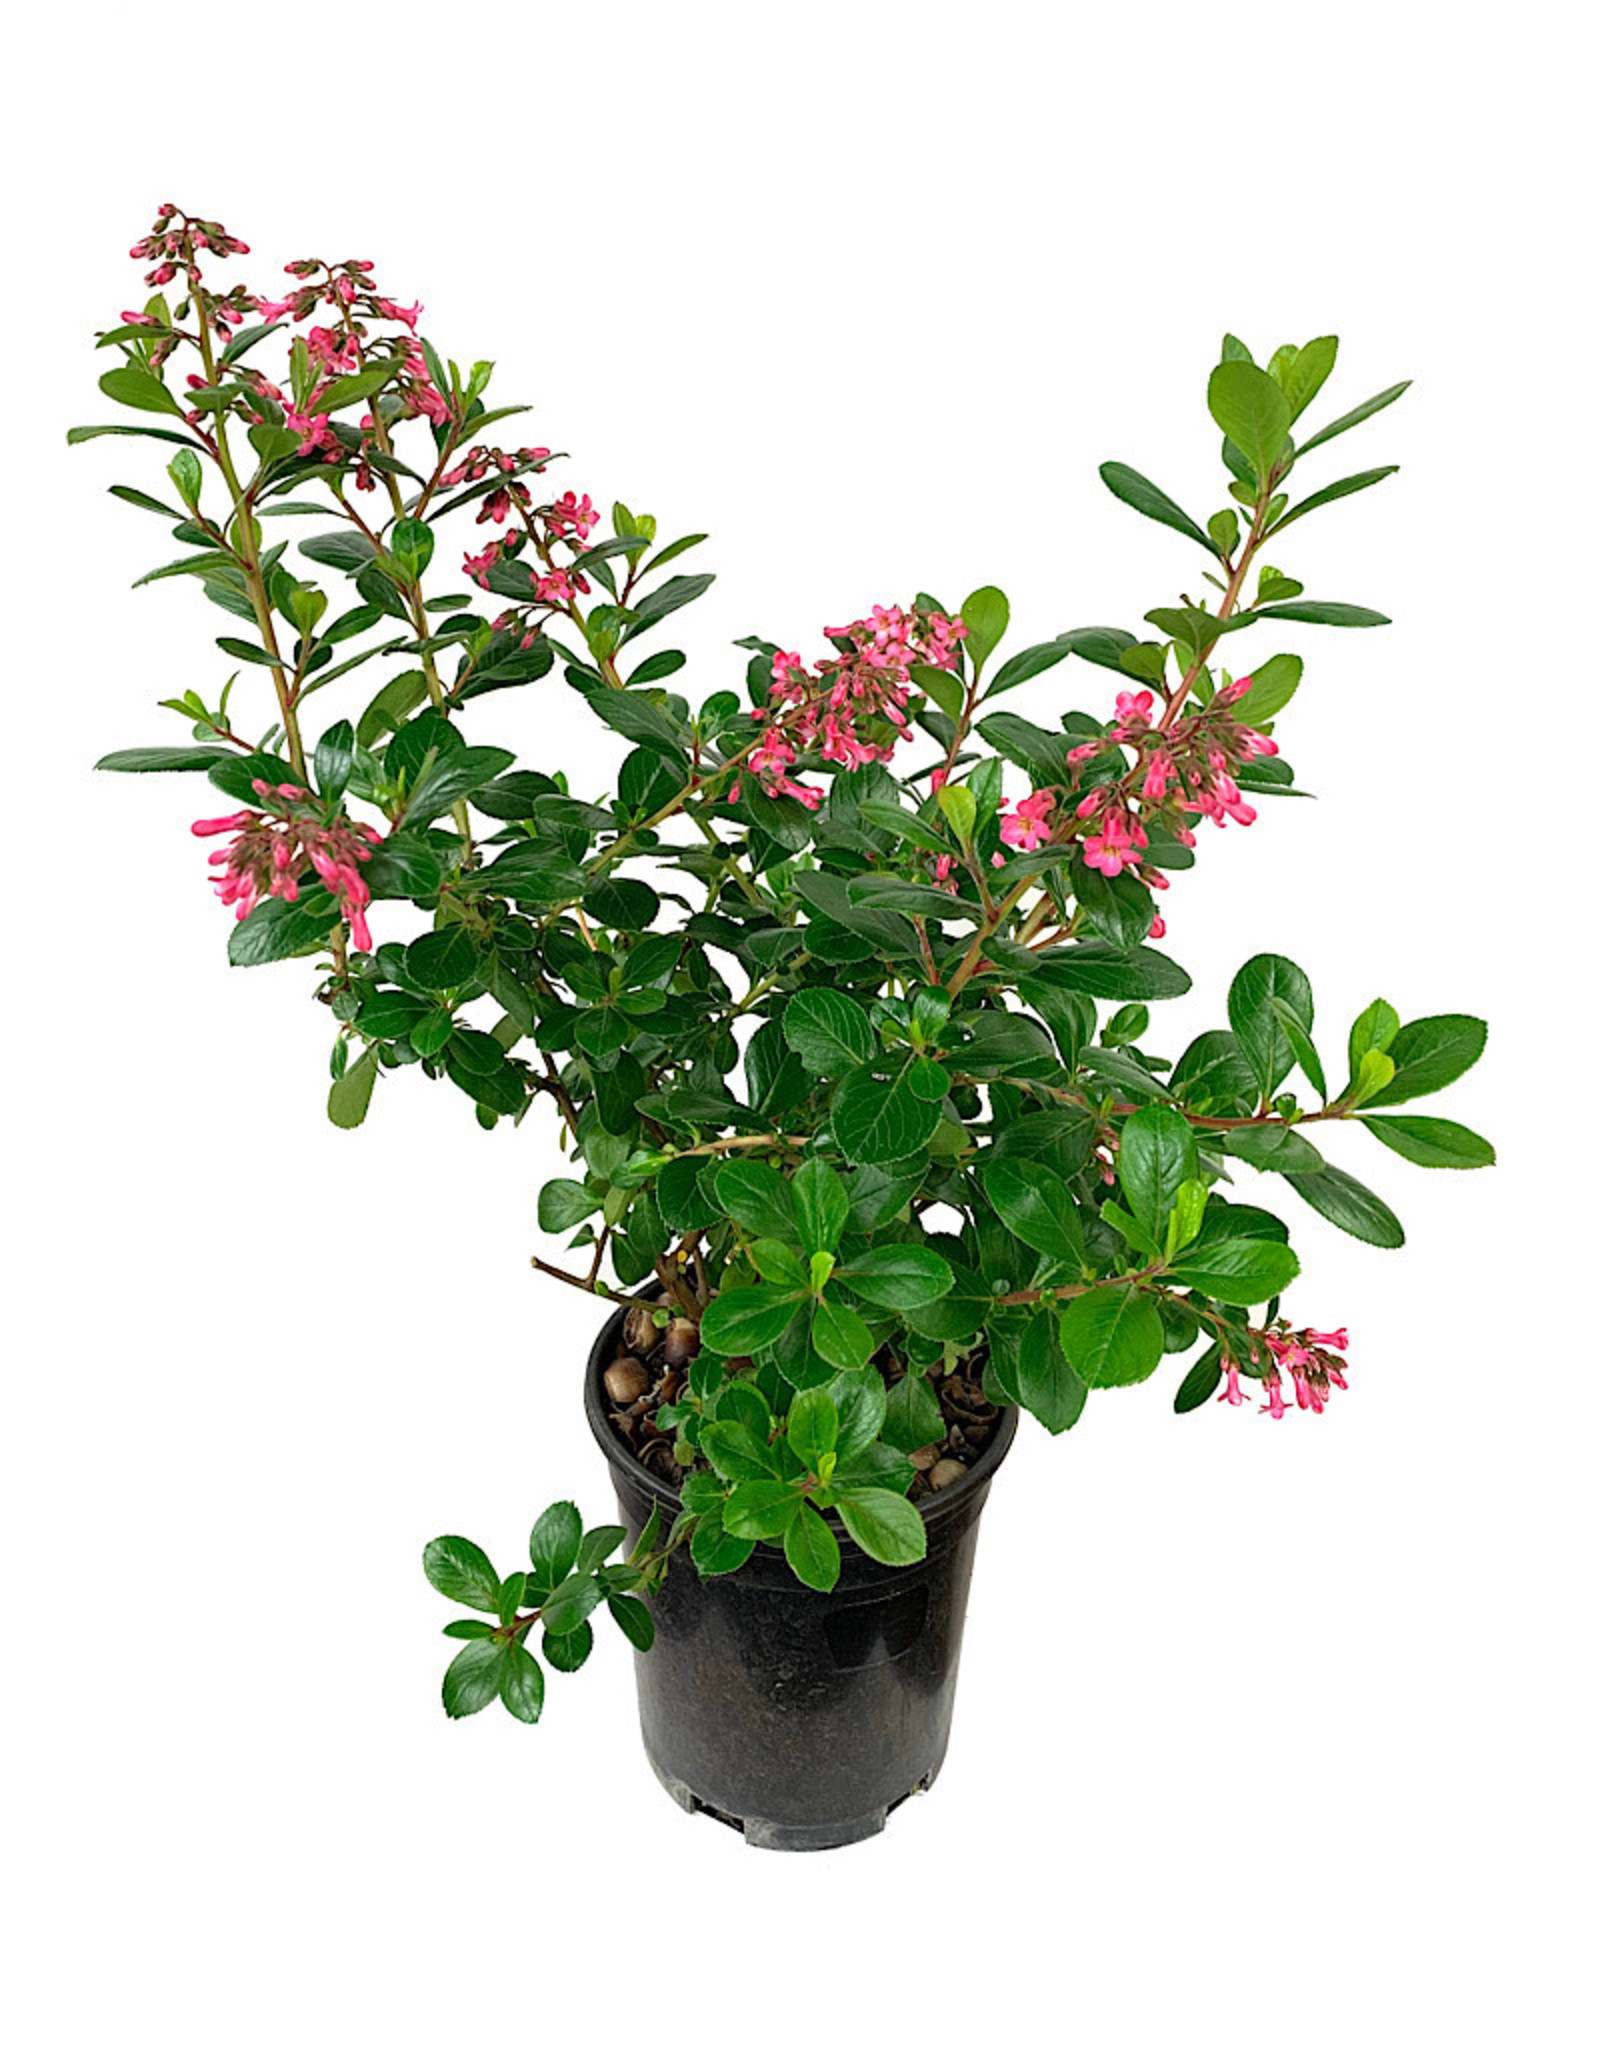 Escallonia 'Fradesii' 1 Gallon